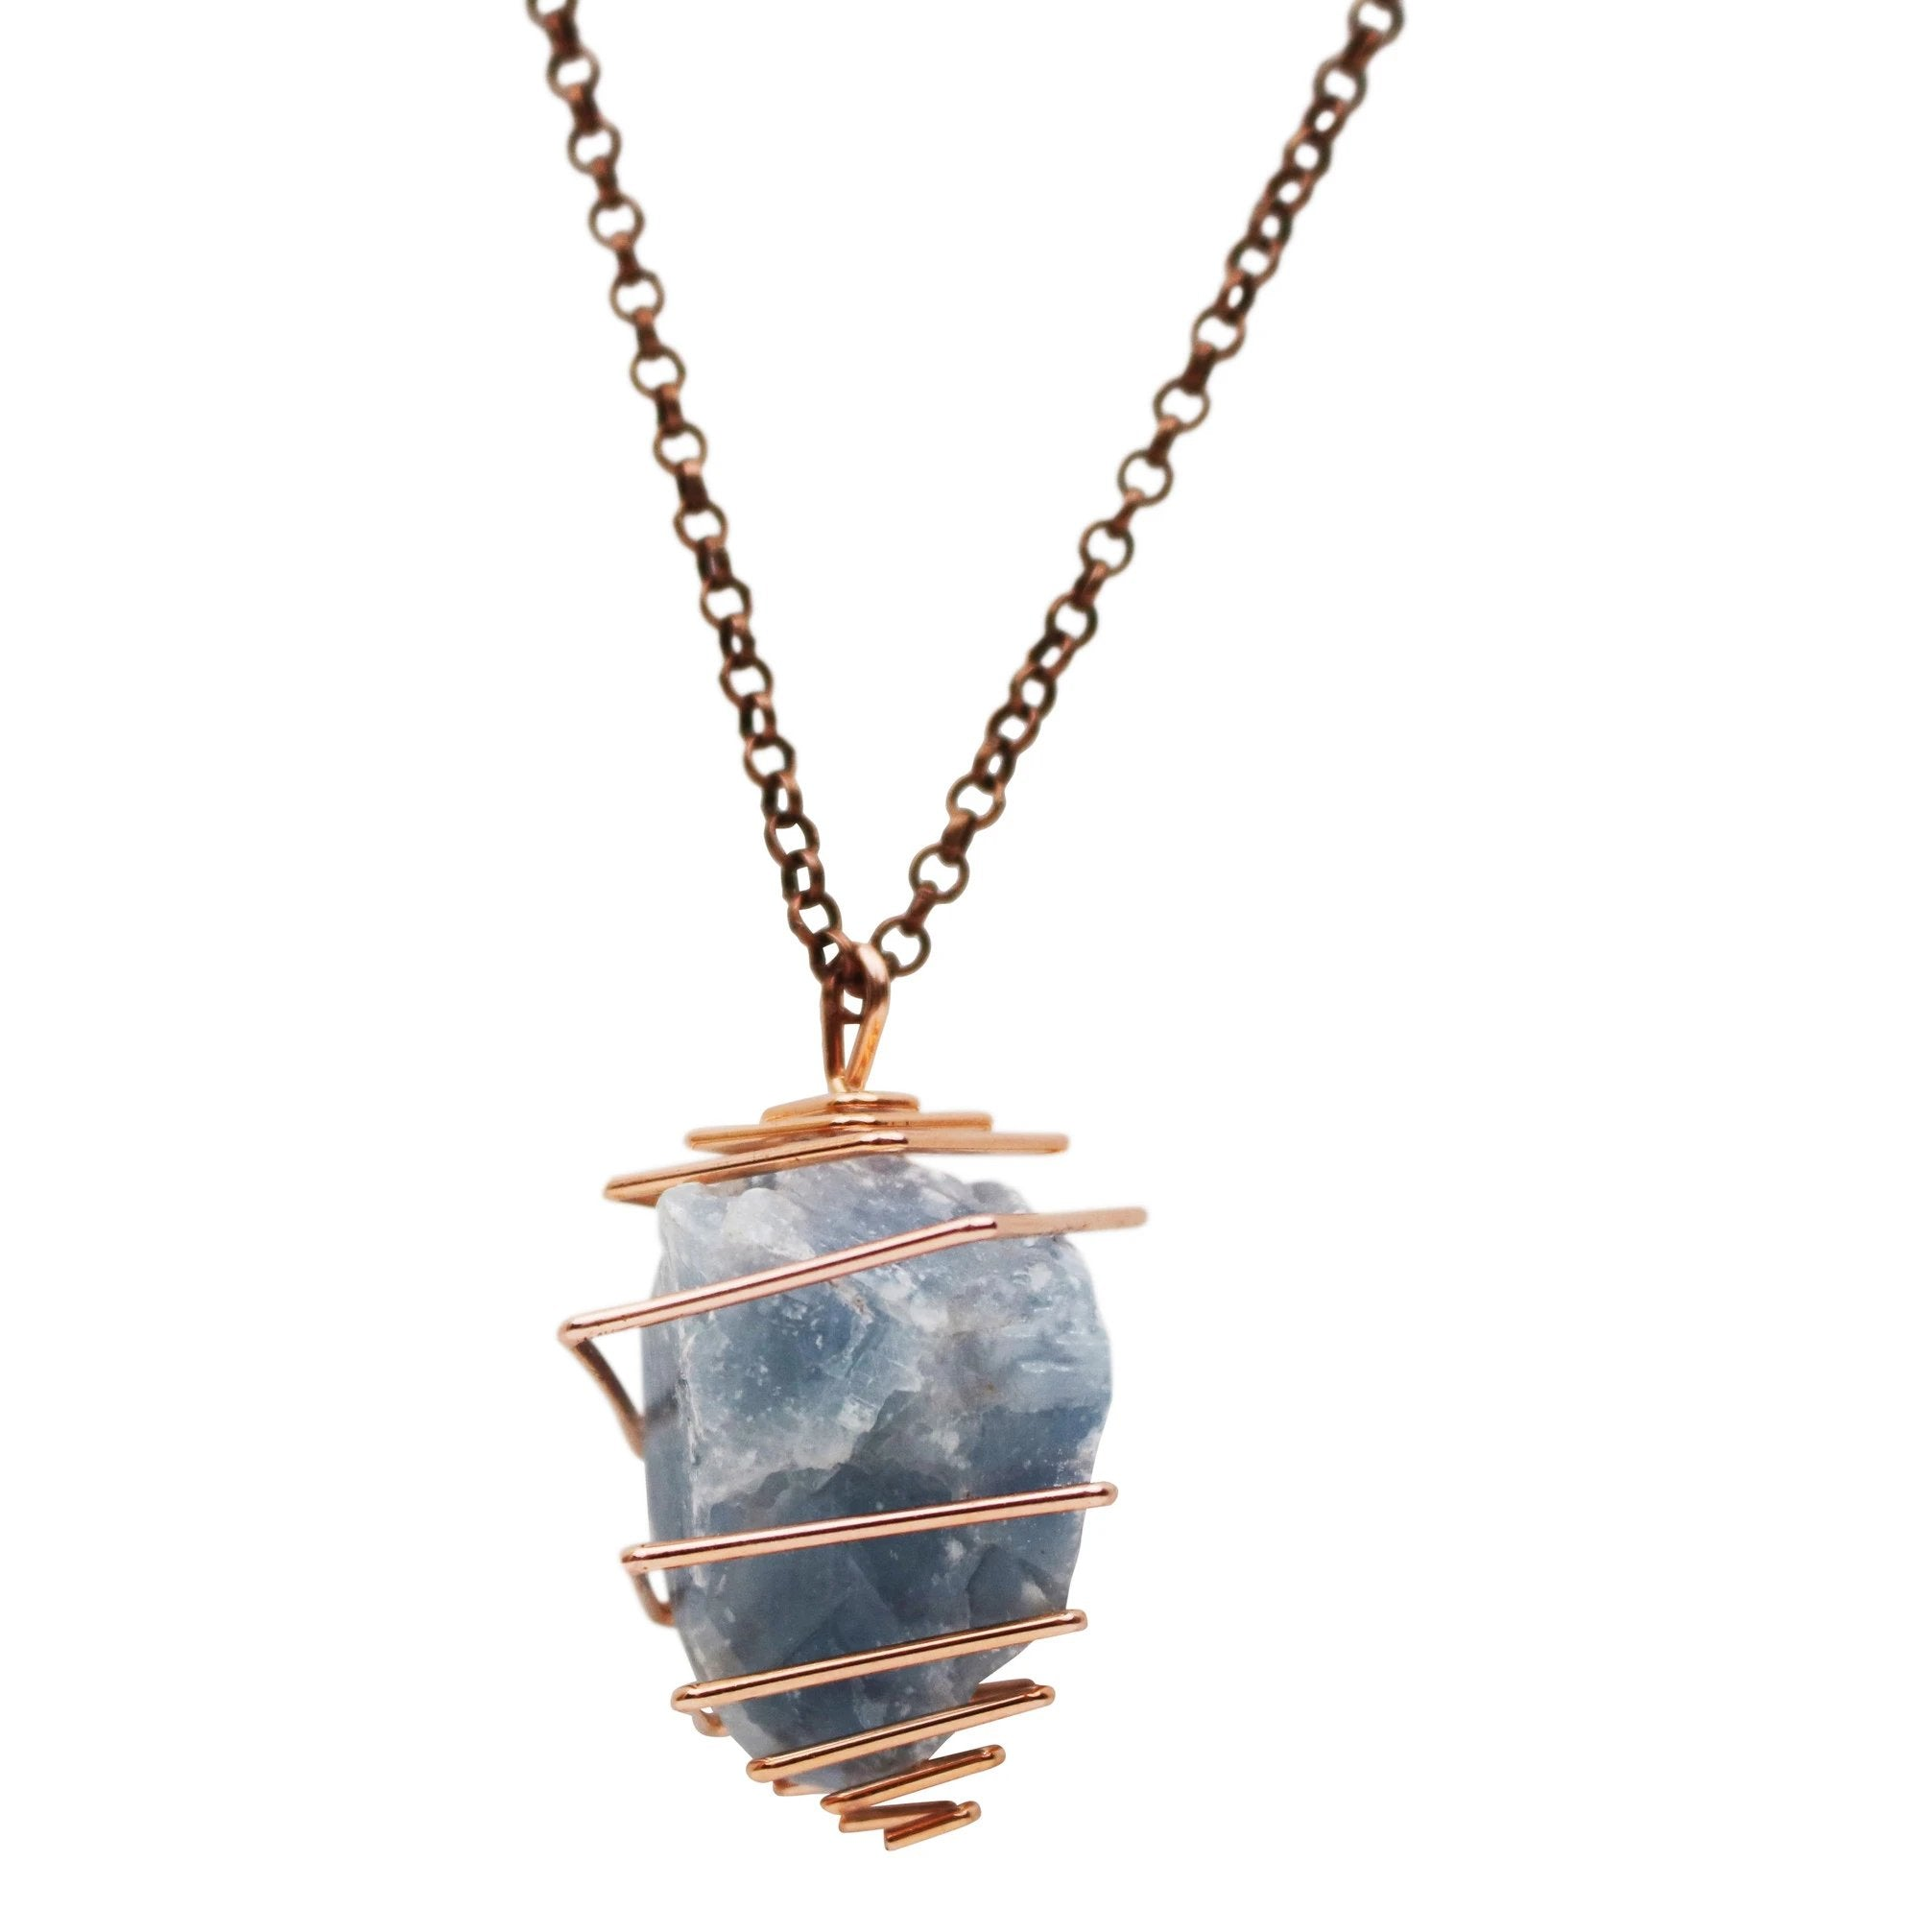 Blue Calcite Crystal Necklace